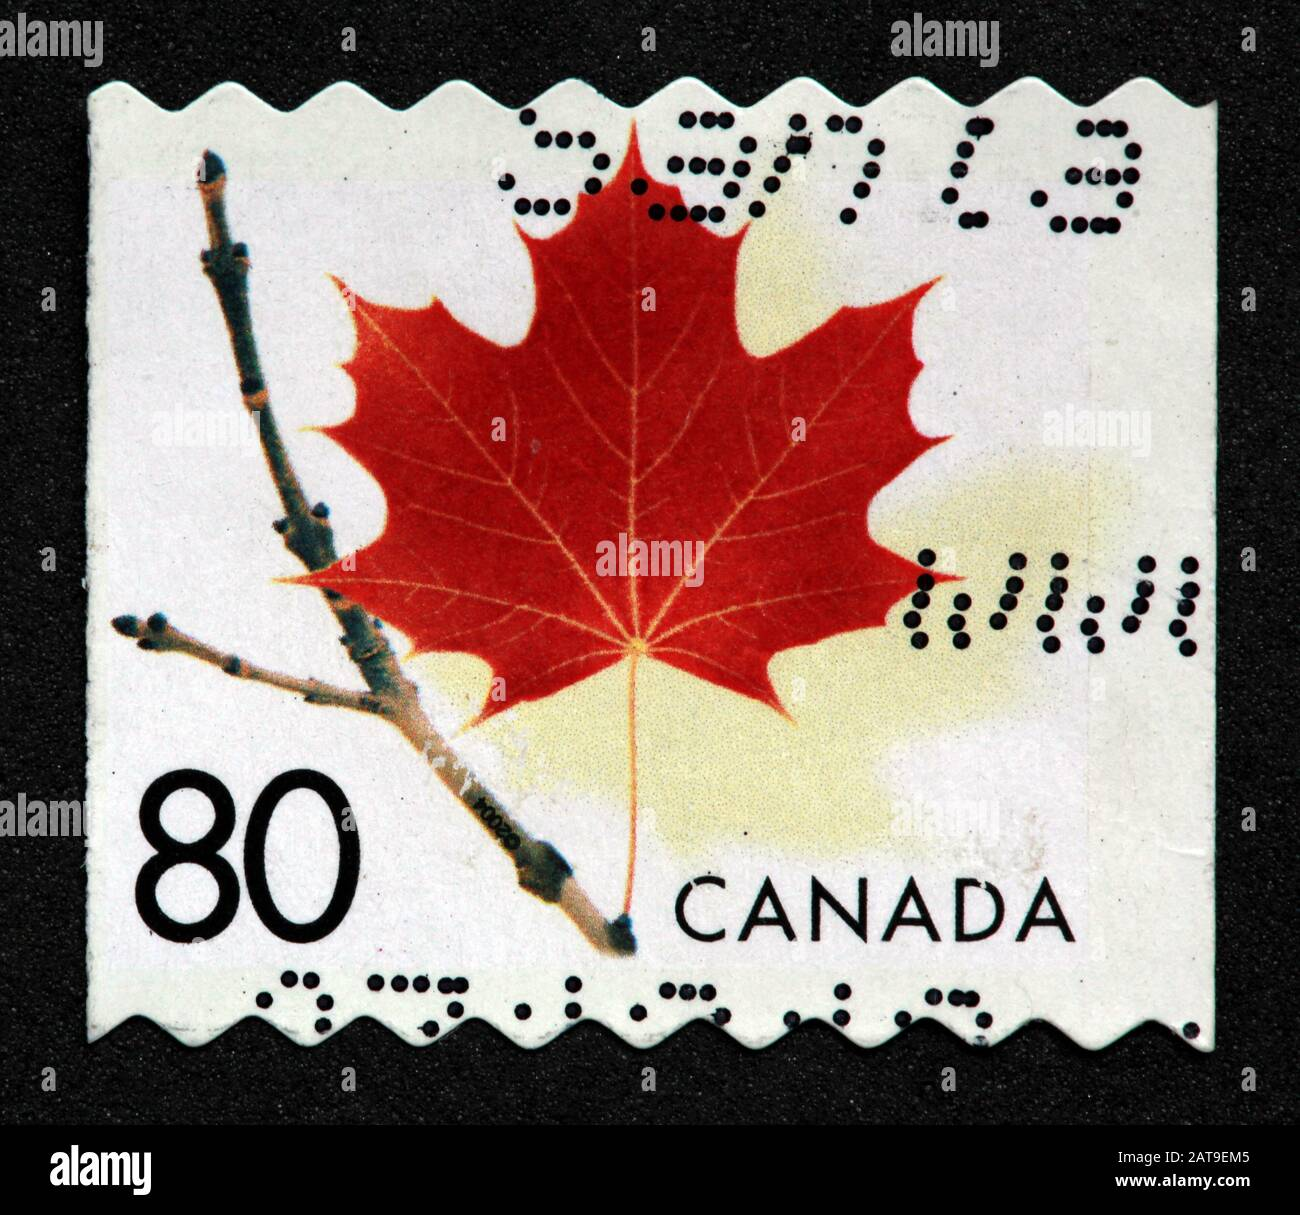 Hotpixuk,@Hotpixuk,GoTonySmith,stamp,postal,franked,frank,used stamps,used franked,used,franked stamp,from envelope,history,historic,old,poste,post office,communications,postage,sending letters,sending,parcels,autumn,80c,80cents,Maple Leaf,leaf,leaves,80 cents,Canadian